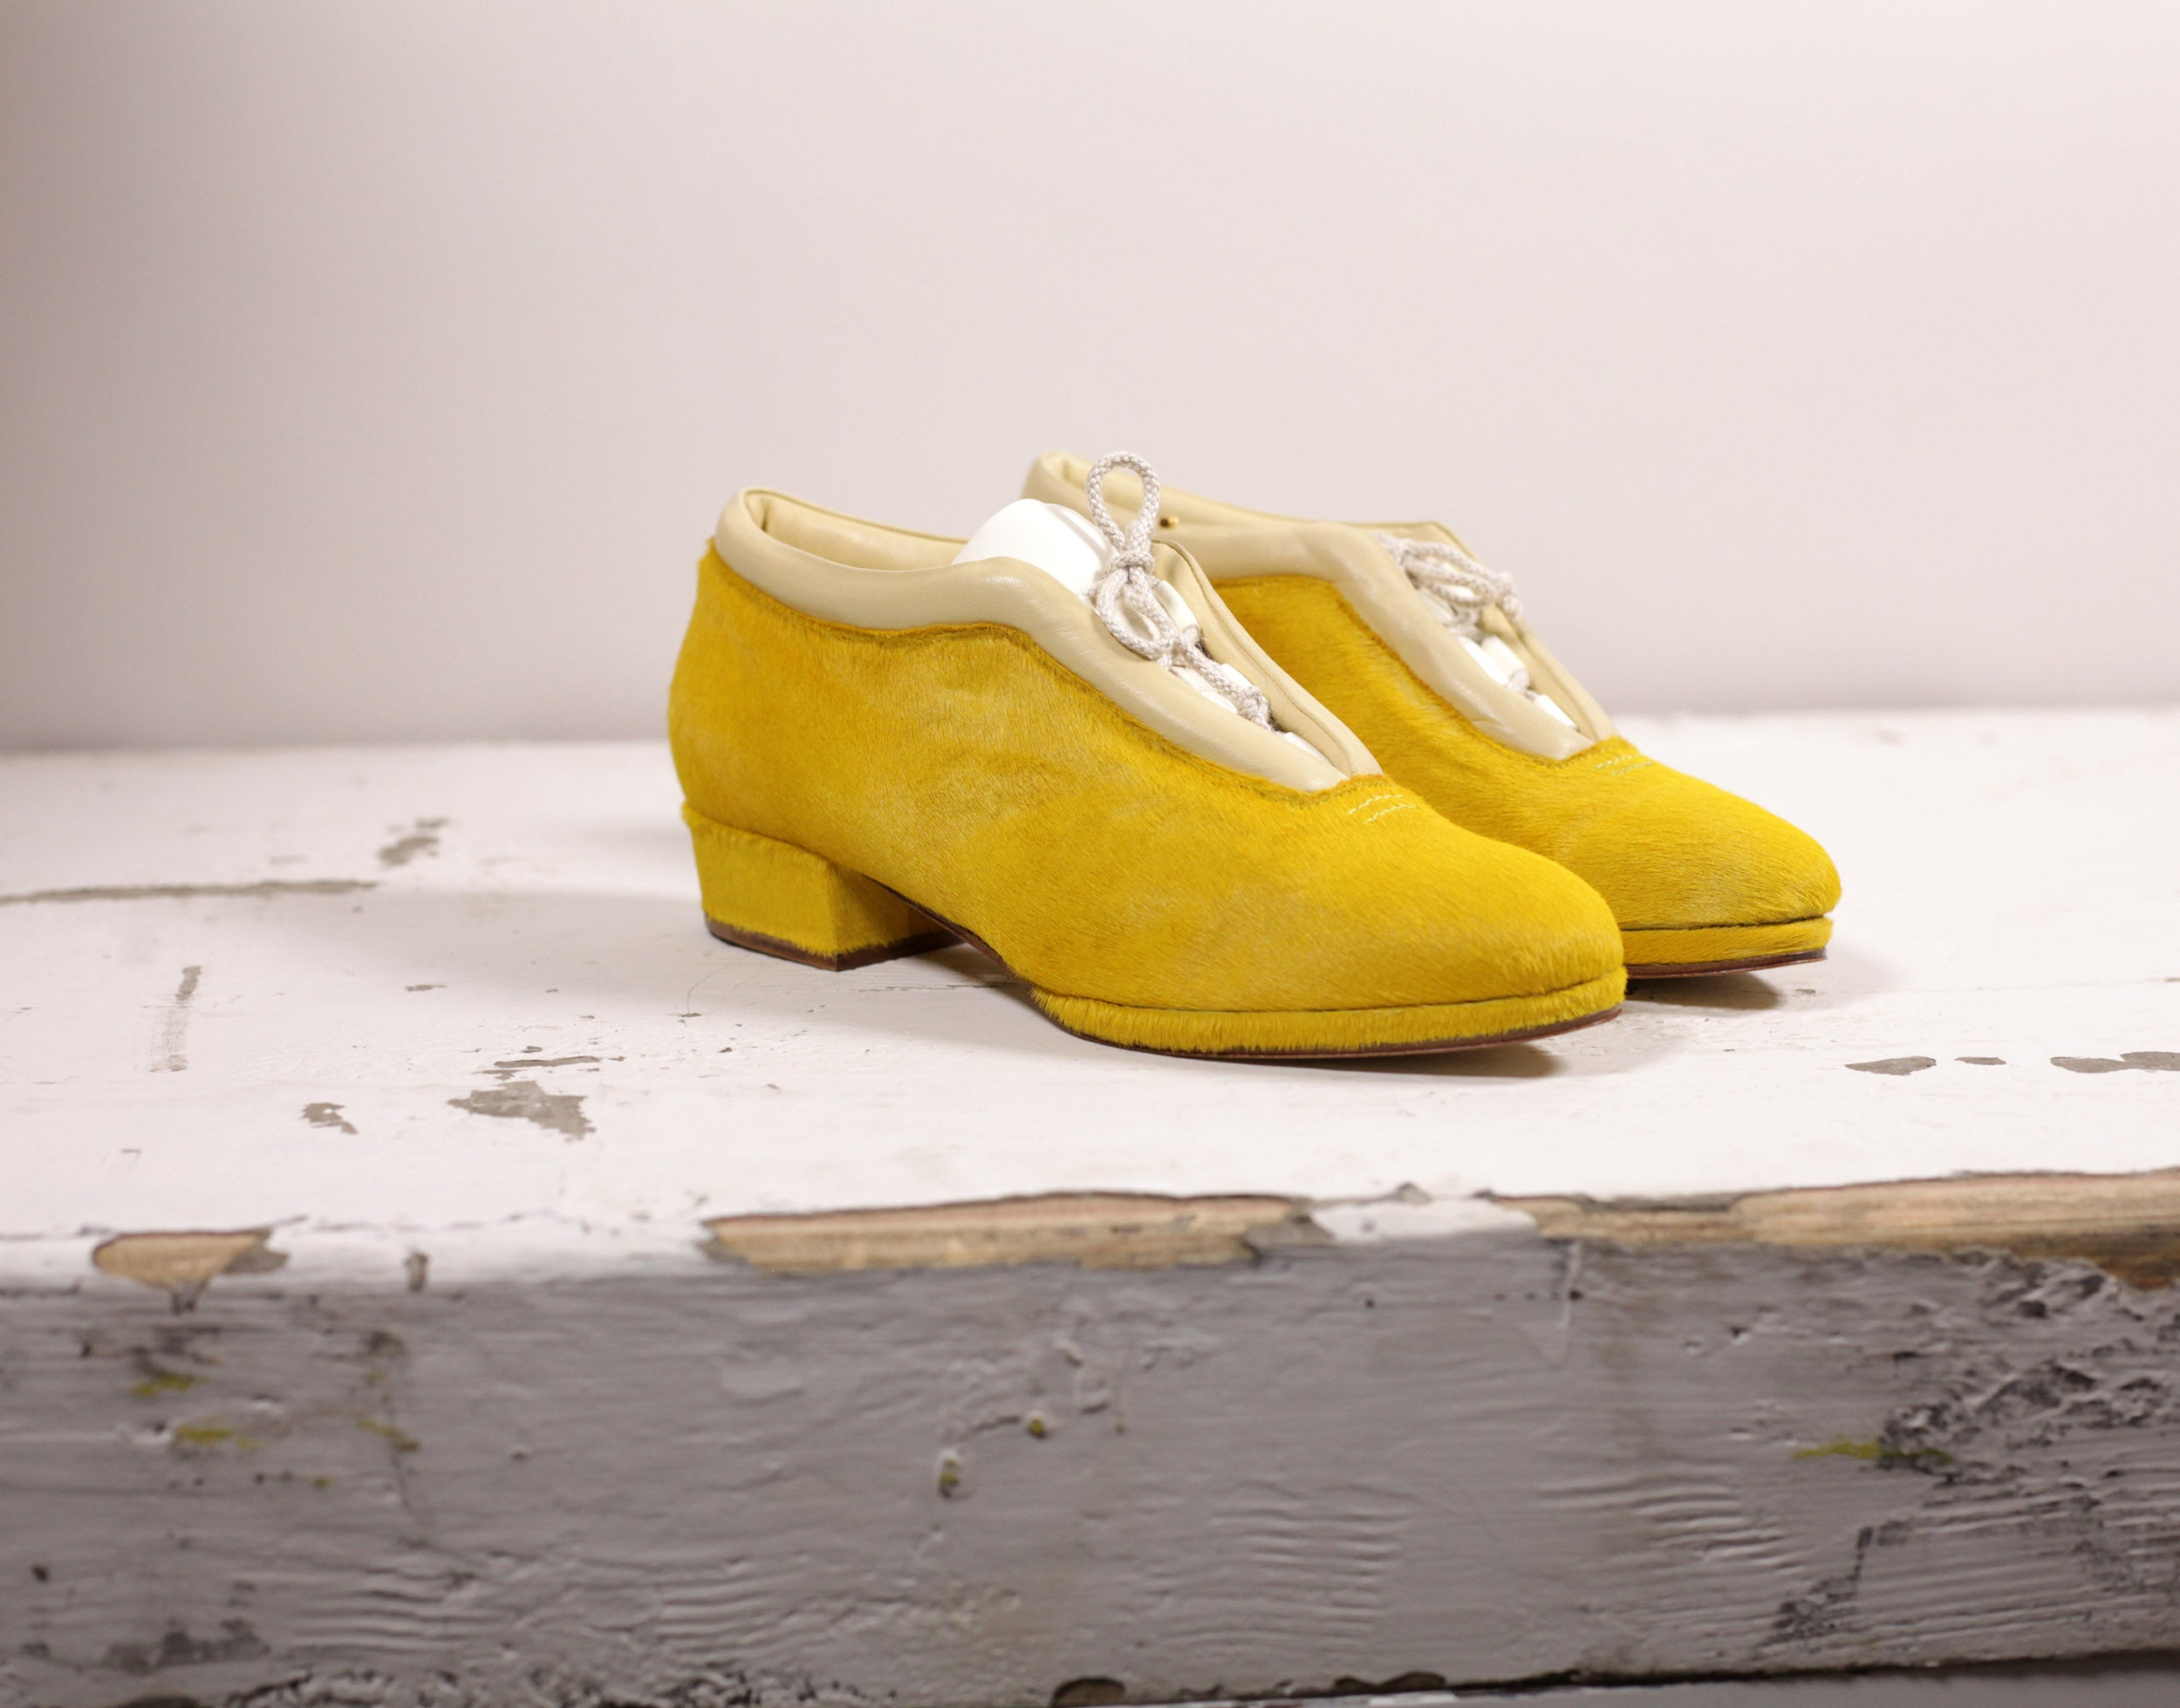 The Evangeline in yellow pony